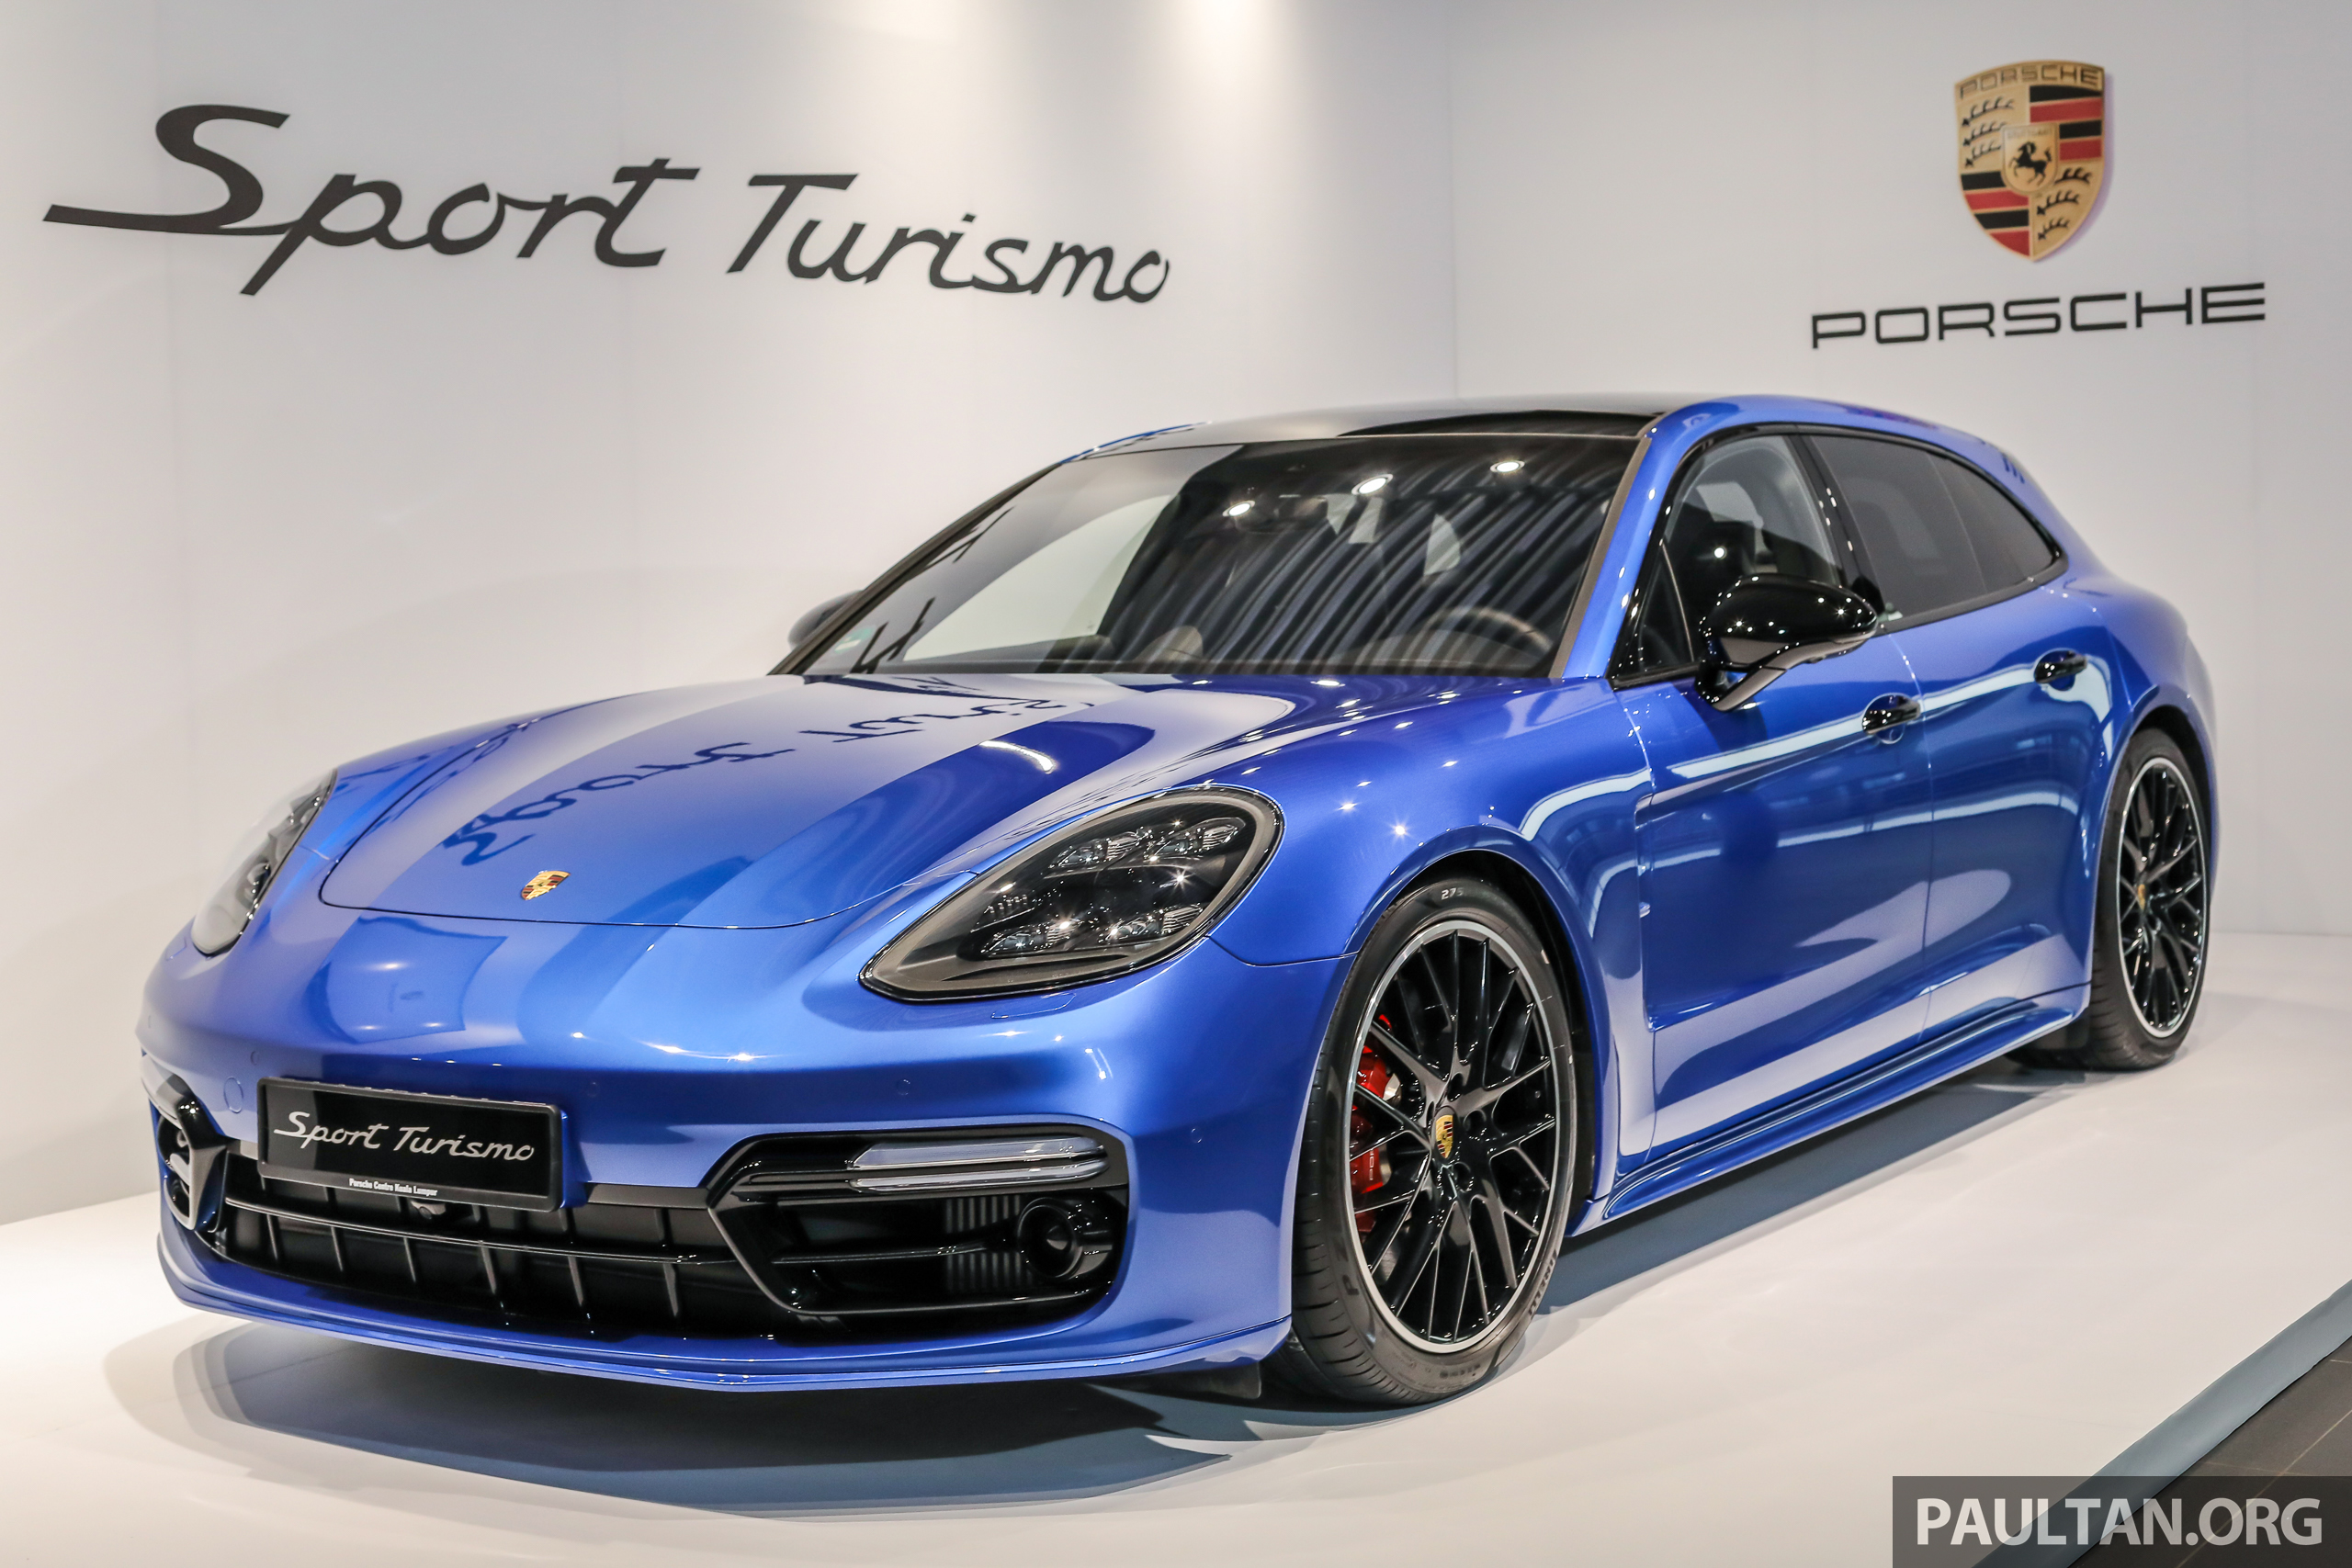 2018-Porsche-Panamera-Turbo-Sport-Turismo-Preview_Ext-1.jpg